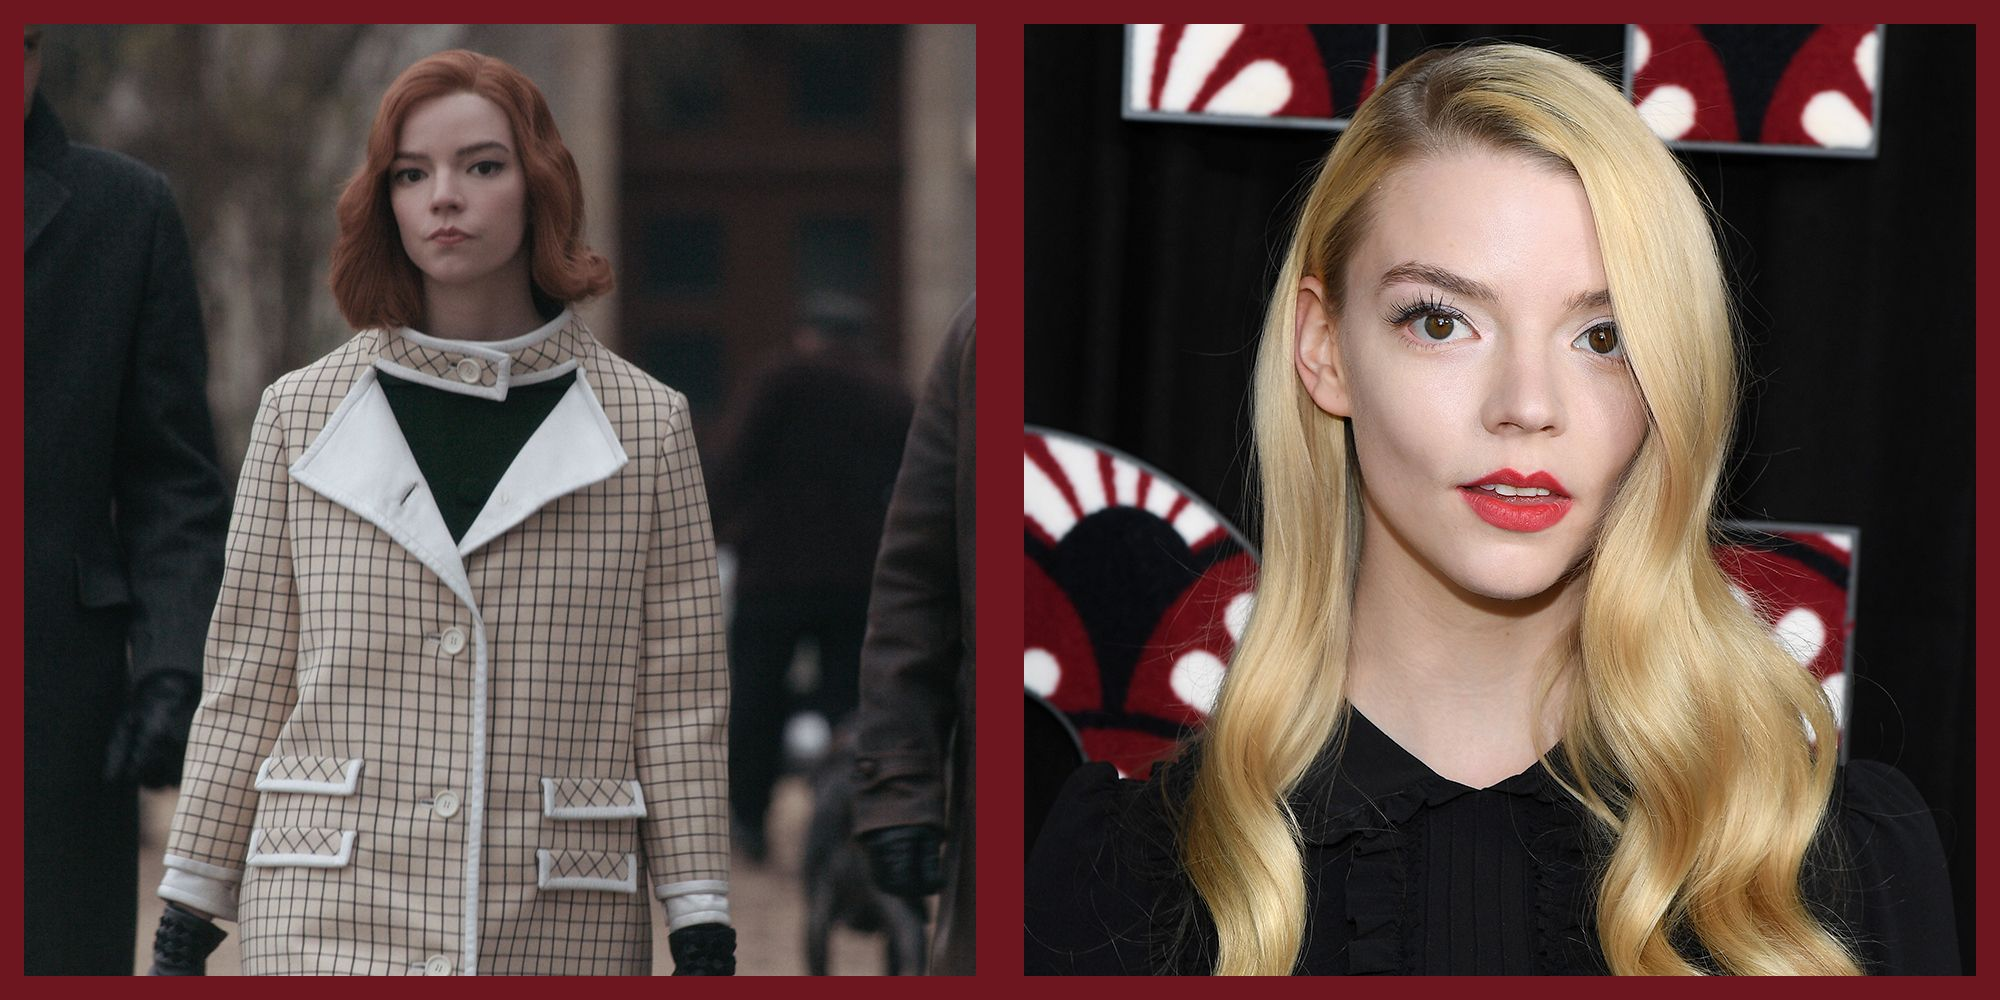 The Queen S Gambit Cast In Real Life What The Actors Look Like Vs Their Characters